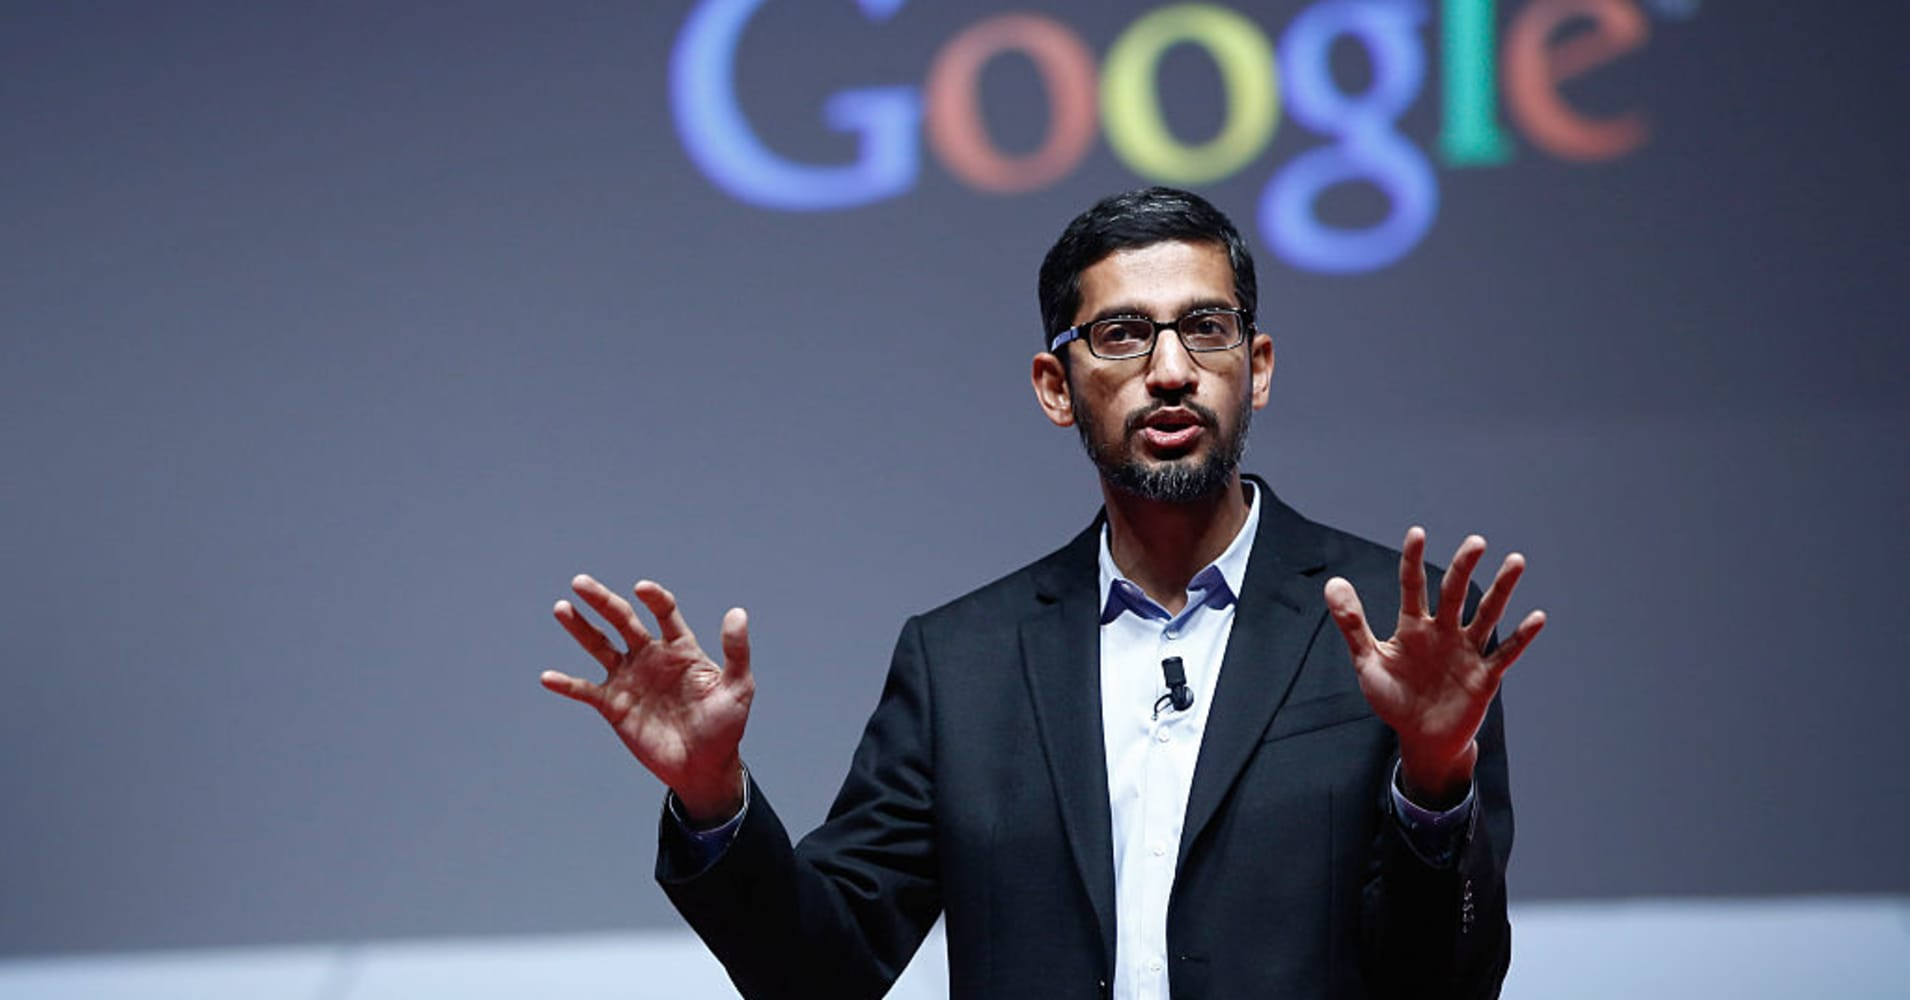 How Google Ceo S Brilliant Answer In A Job Interview Helped Him Get